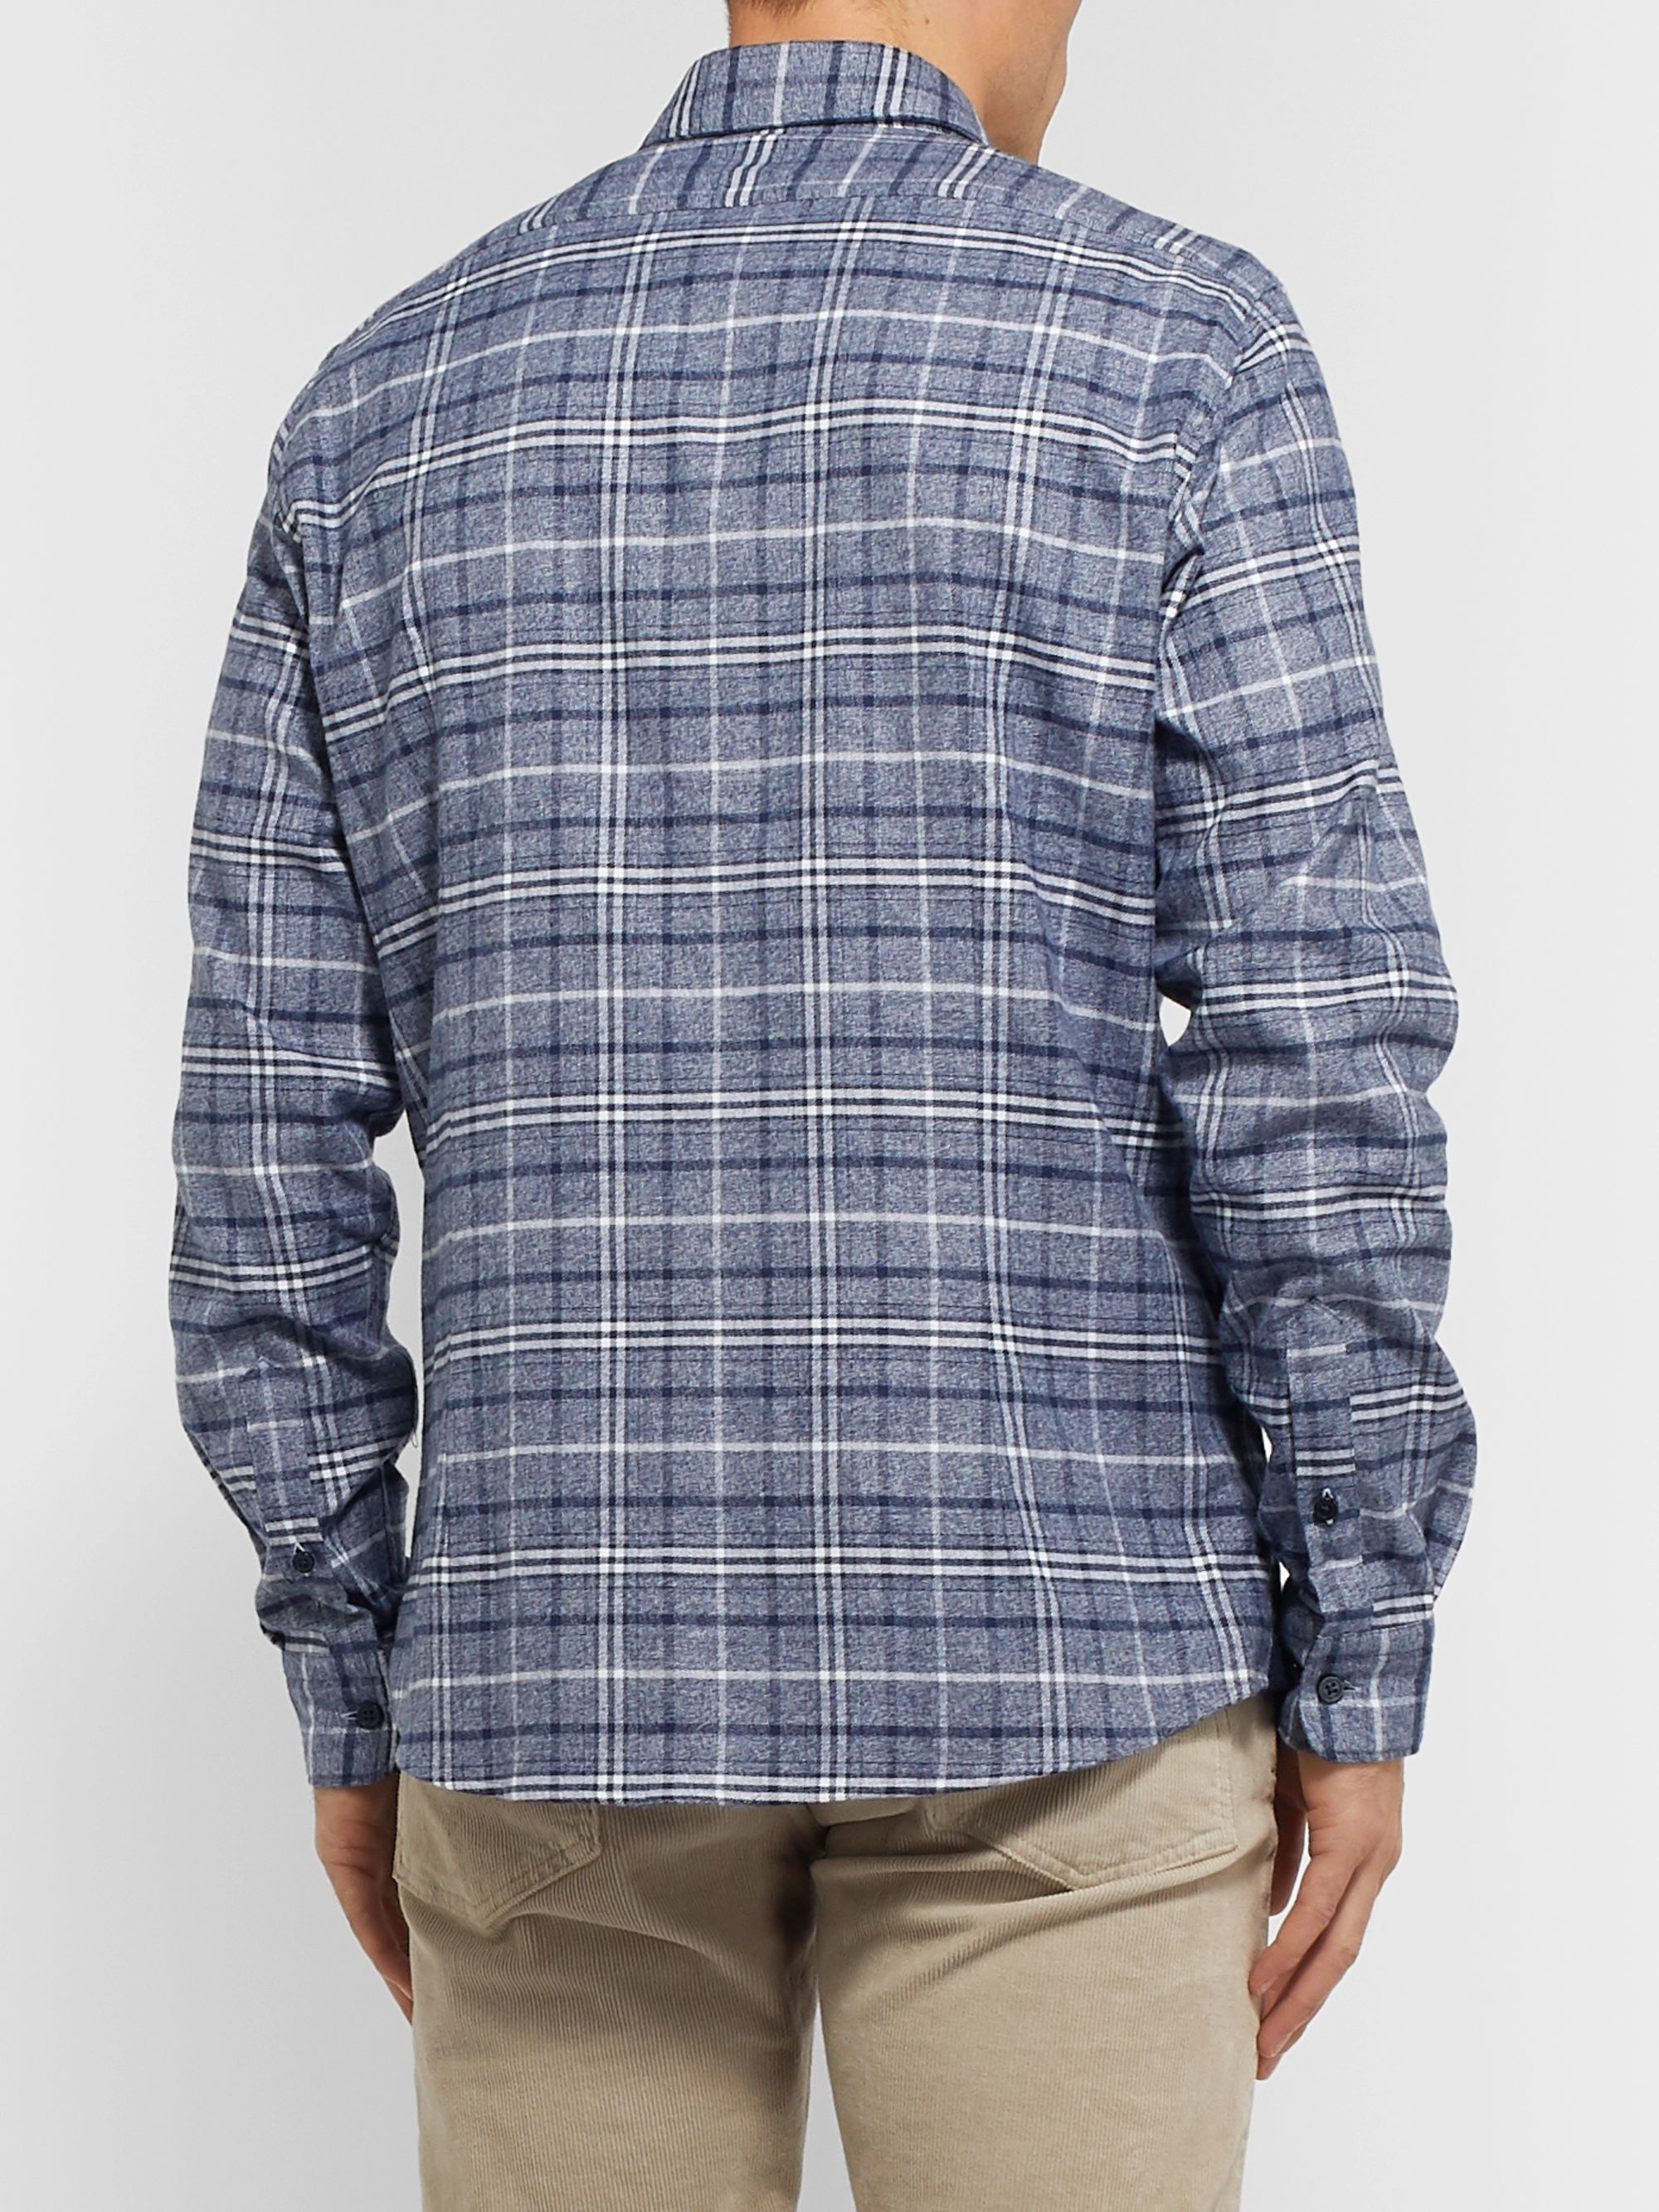 Hugo Boss Checked Cotton and Lyocell-Blend Flannel Shirt